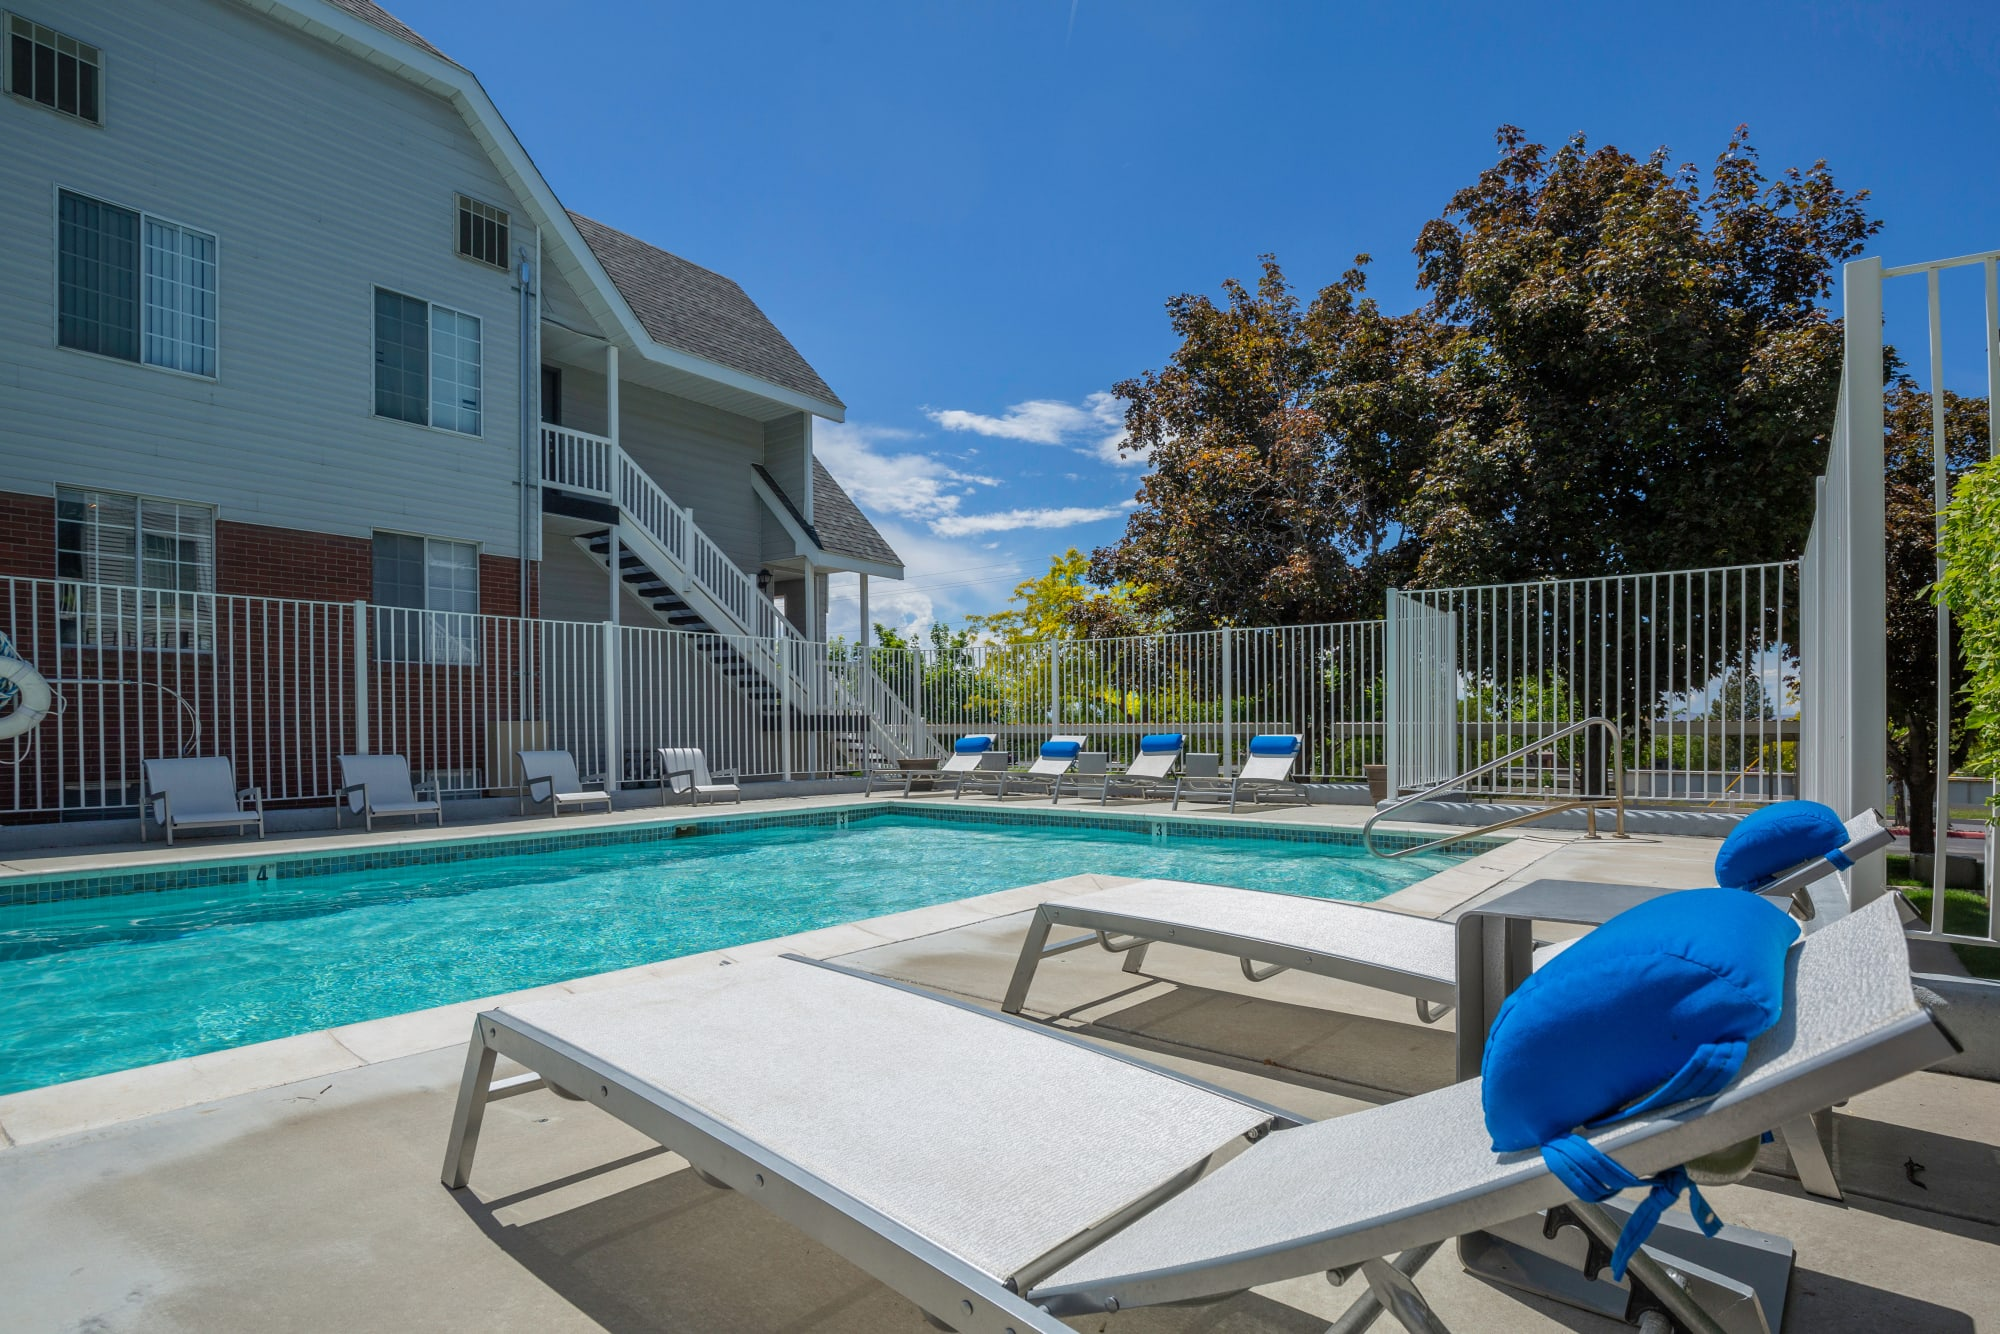 Poolside lounge chairs at Windgate Apartments in Bountiful, Utah